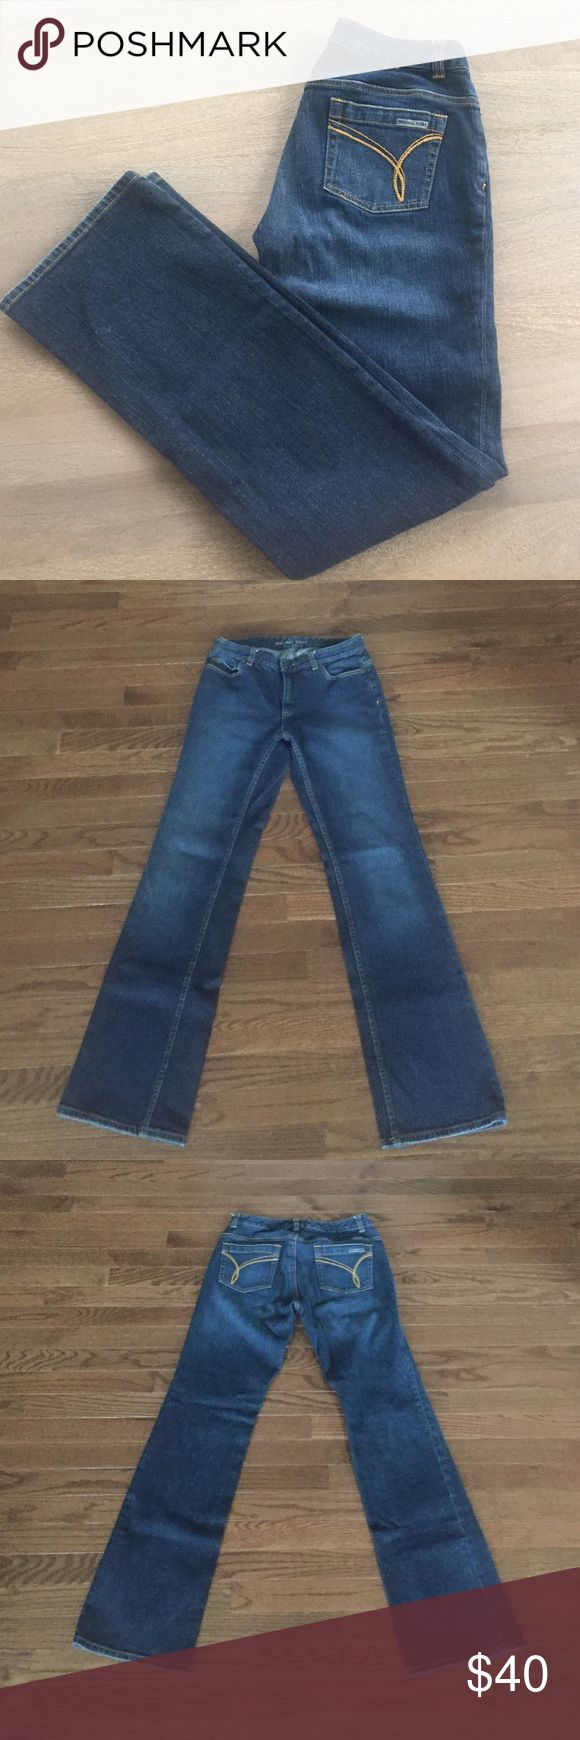 """Michael Kors stretch boot cut jeans MK medium dark wash denim stretch boot cut jeans. Mustard yellow embroidery on back pockets with """"Michael Kors"""" logo. 98 / 2 cotton / spandex Michael Kors Jeans Boot Cut"""